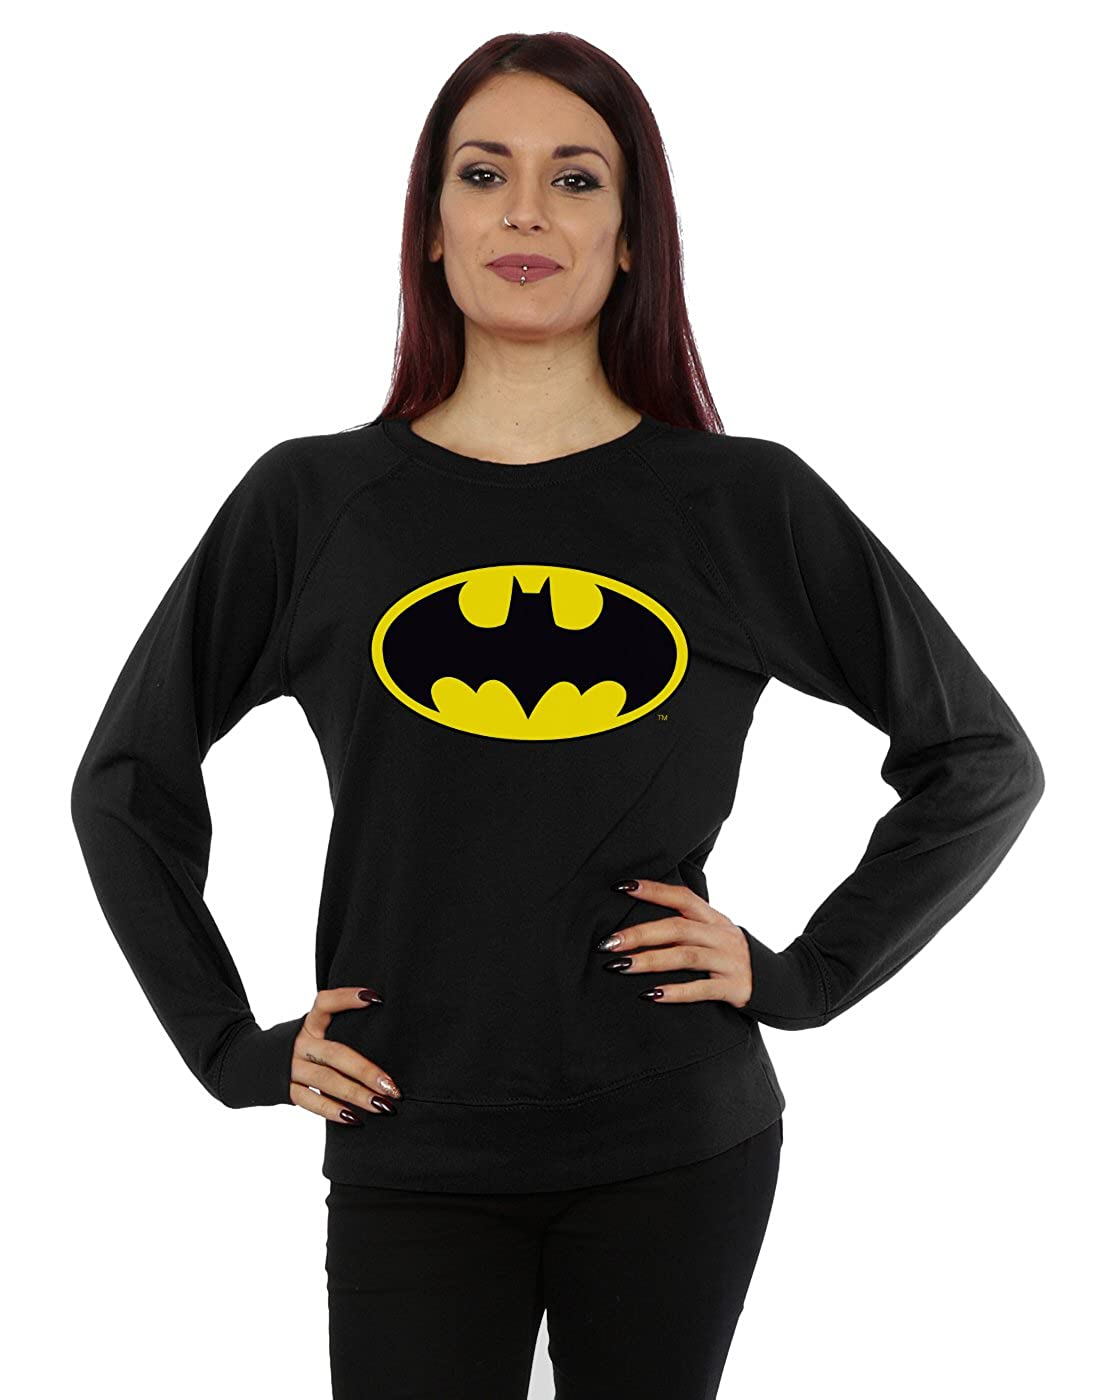 DC Comics Femme Batman Logo Sweat-shirt Absolute Cult